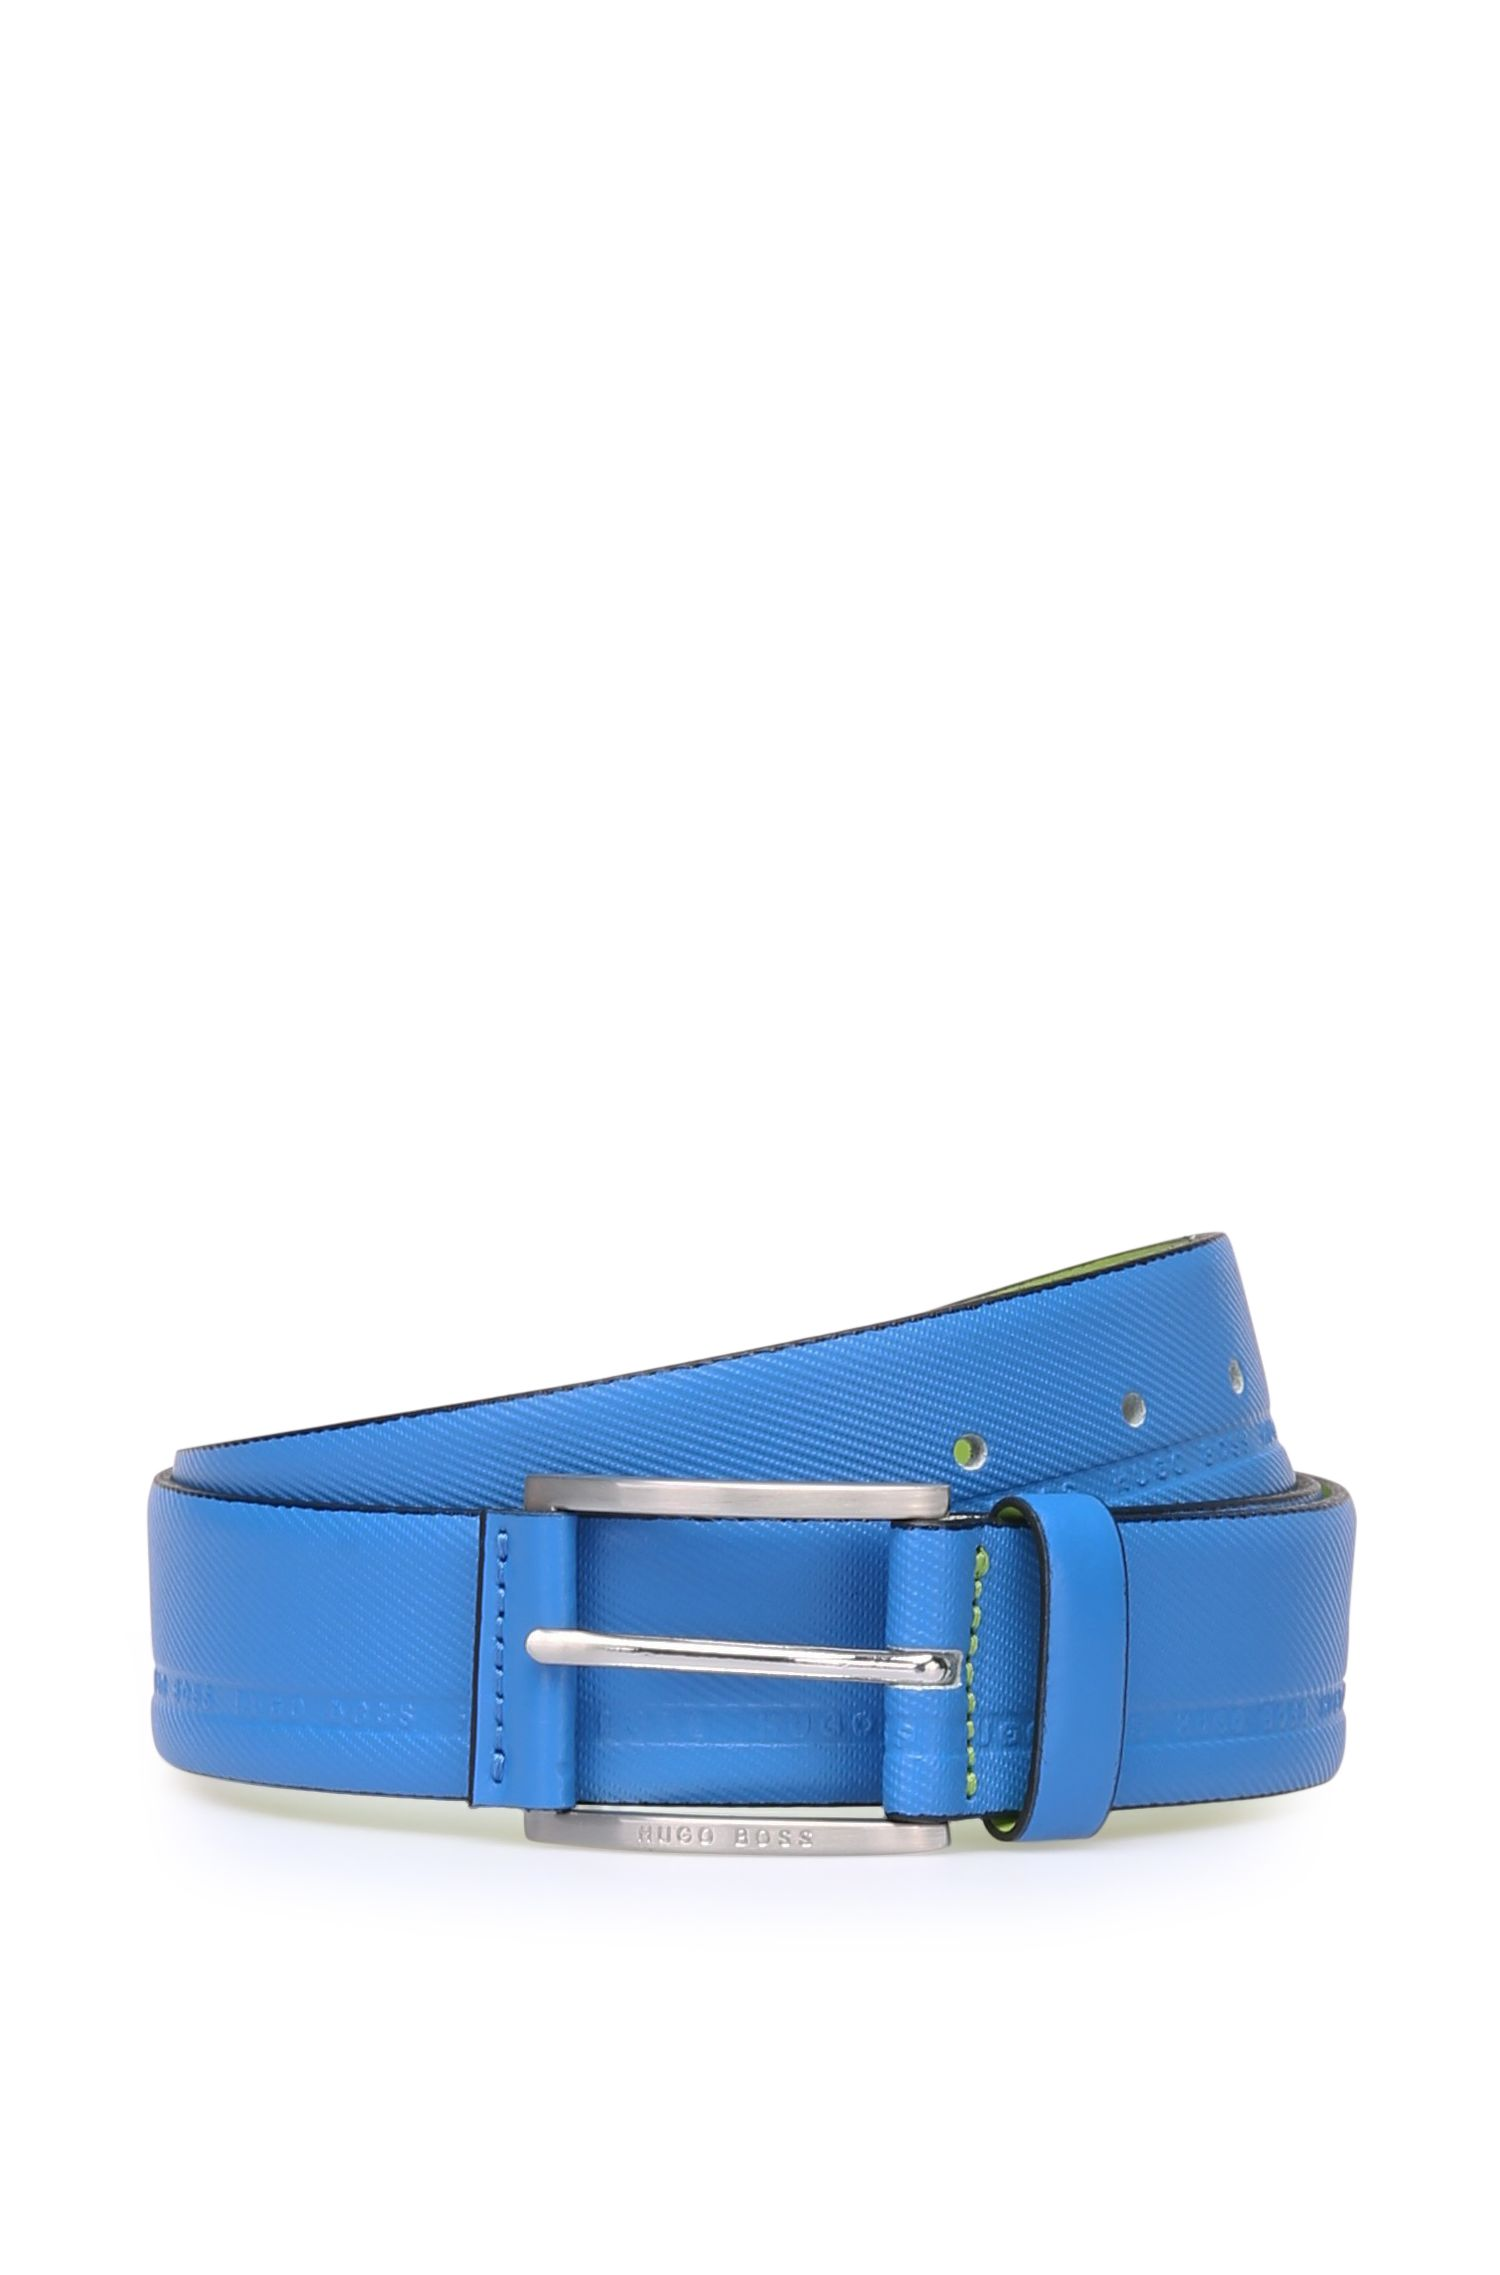 Distinctively textured leather belt with embossed logos: 'Tymos'